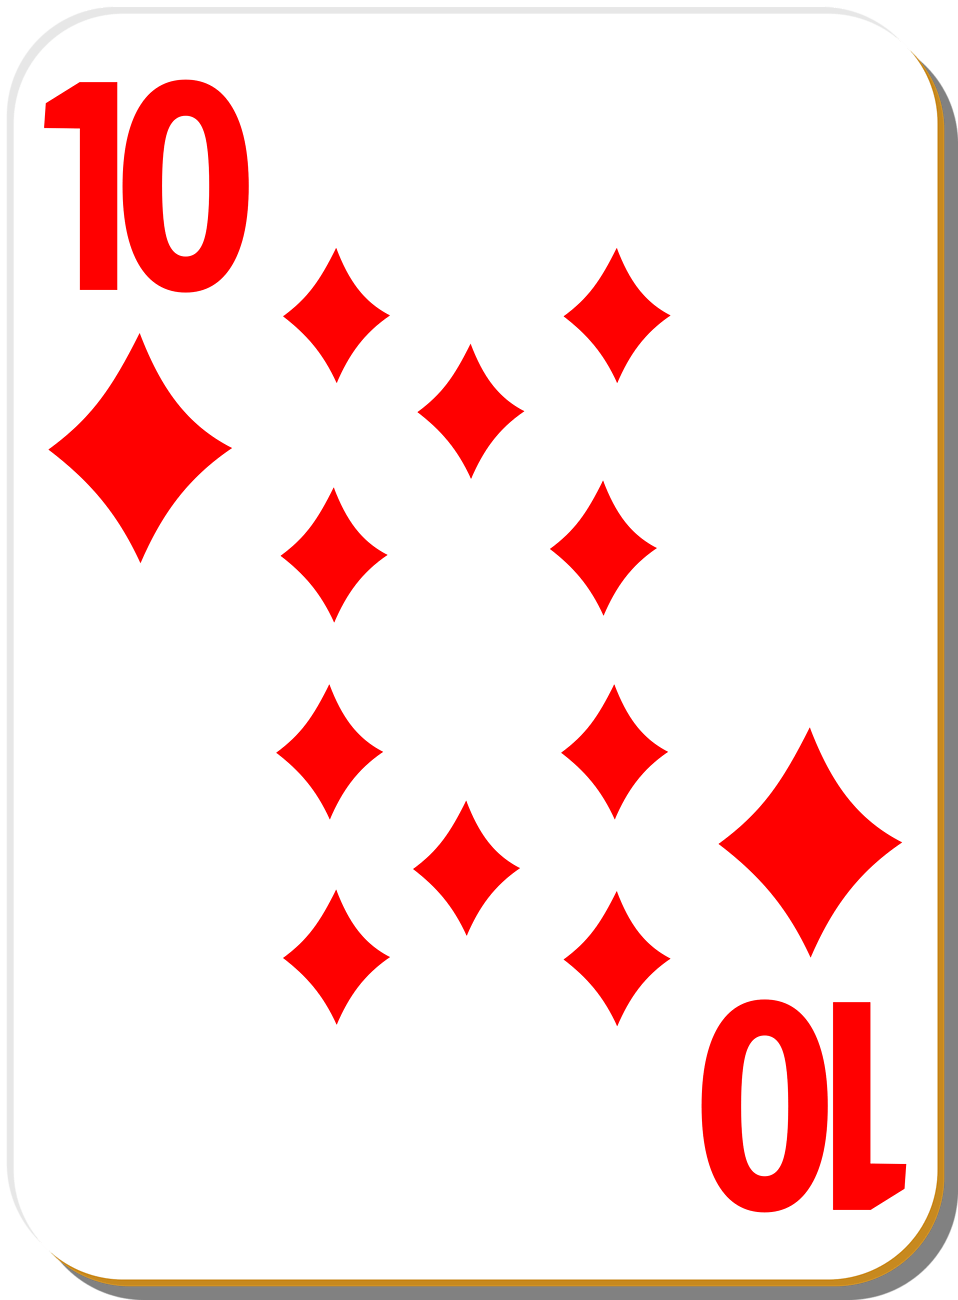 Playing cards graphics clipart best.